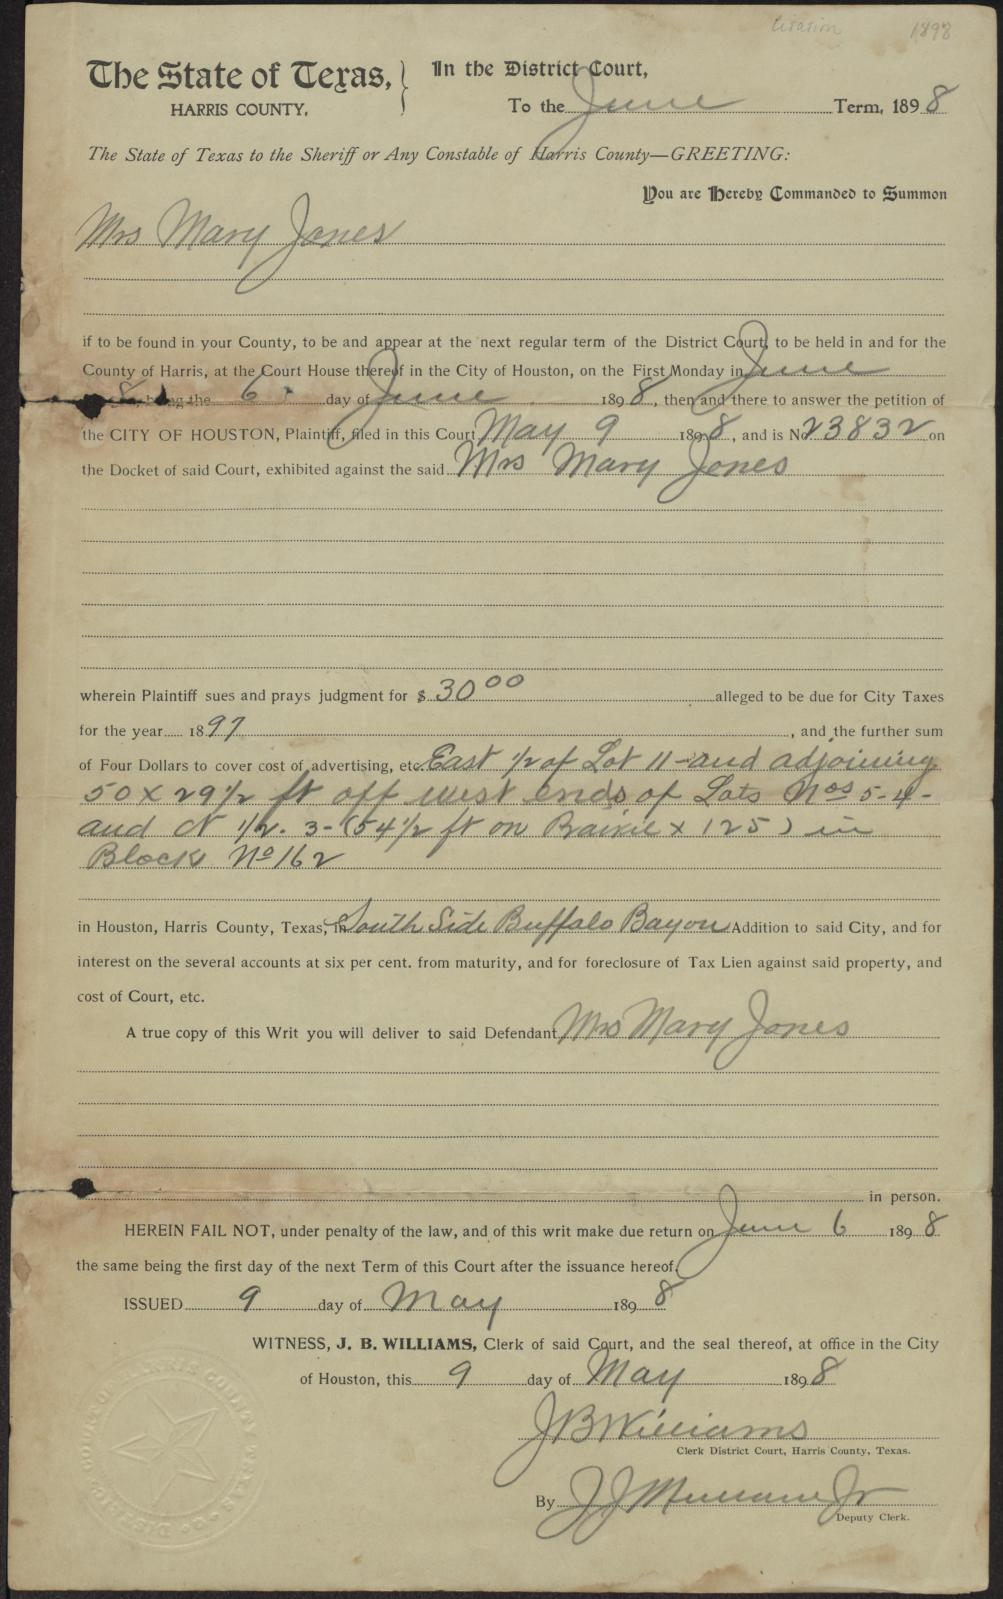 The City of Houston vs. Mrs. Mary Jones, summons issued 9 May 1898                                                                                                      [Sequence #]: 1 of 2